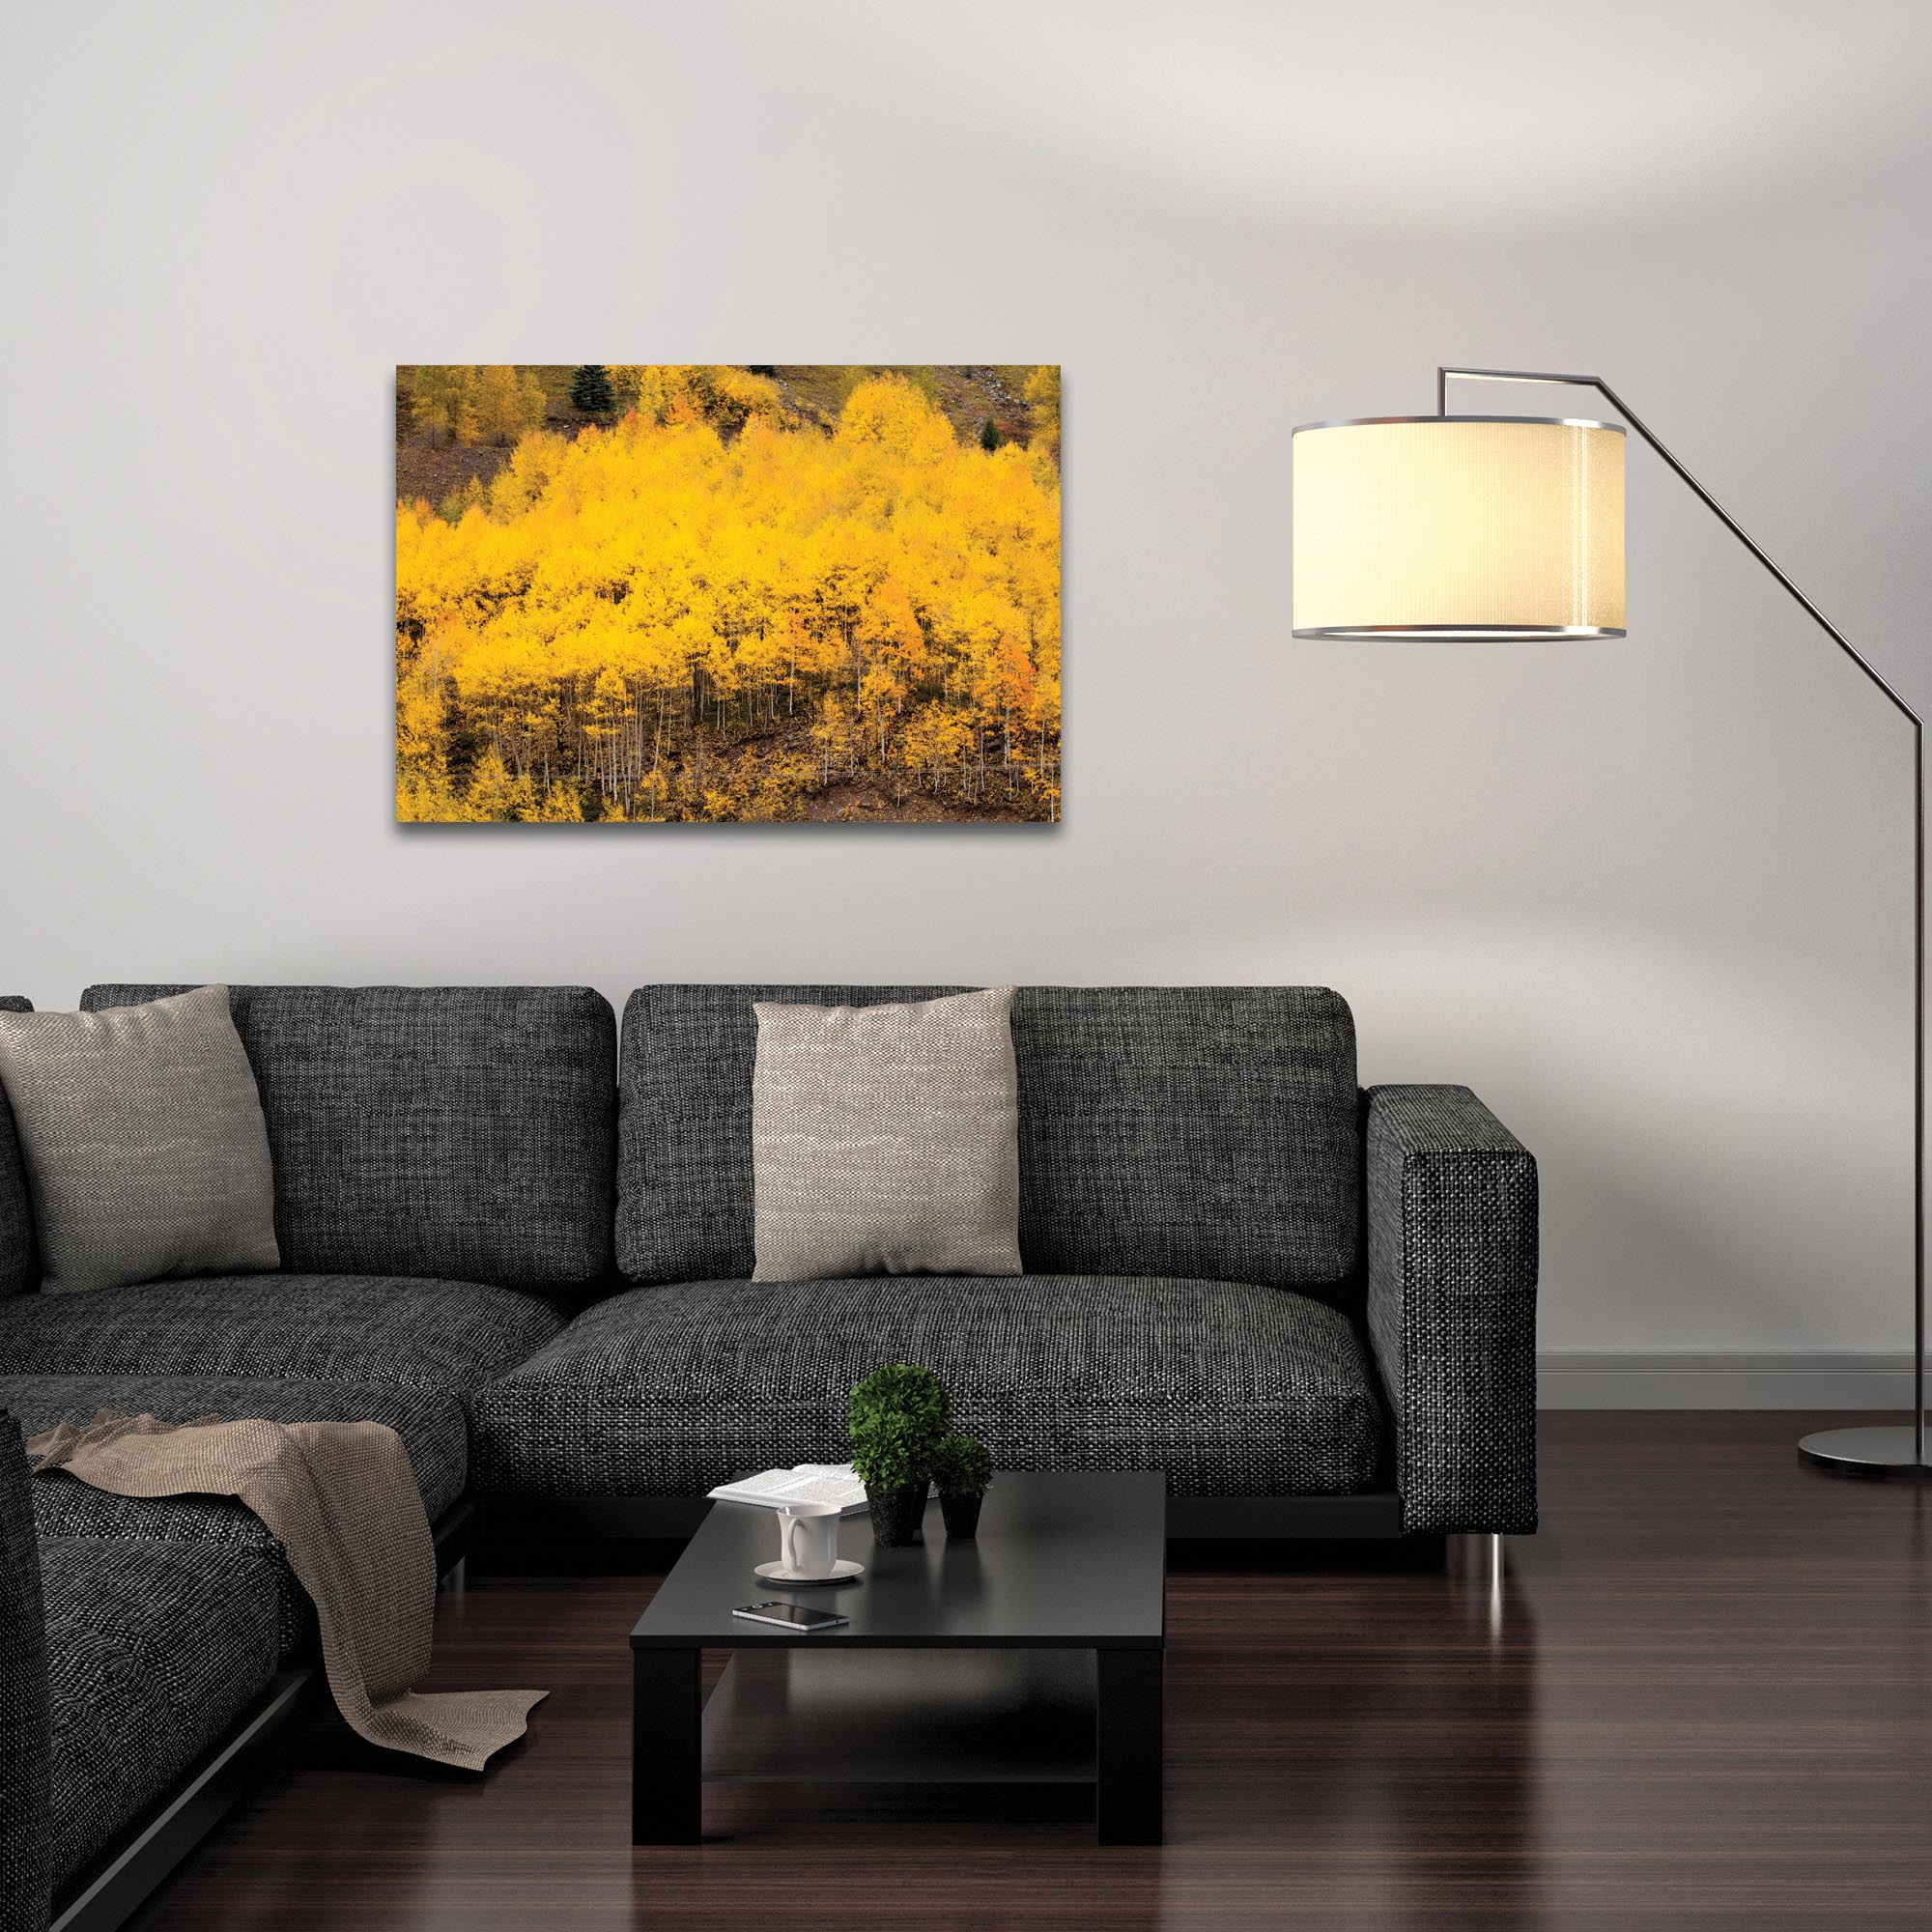 Landscape Photography 'Aspen Autumn' - Autumn Nature Art on Metal or Plexiglass - Lifestyle View